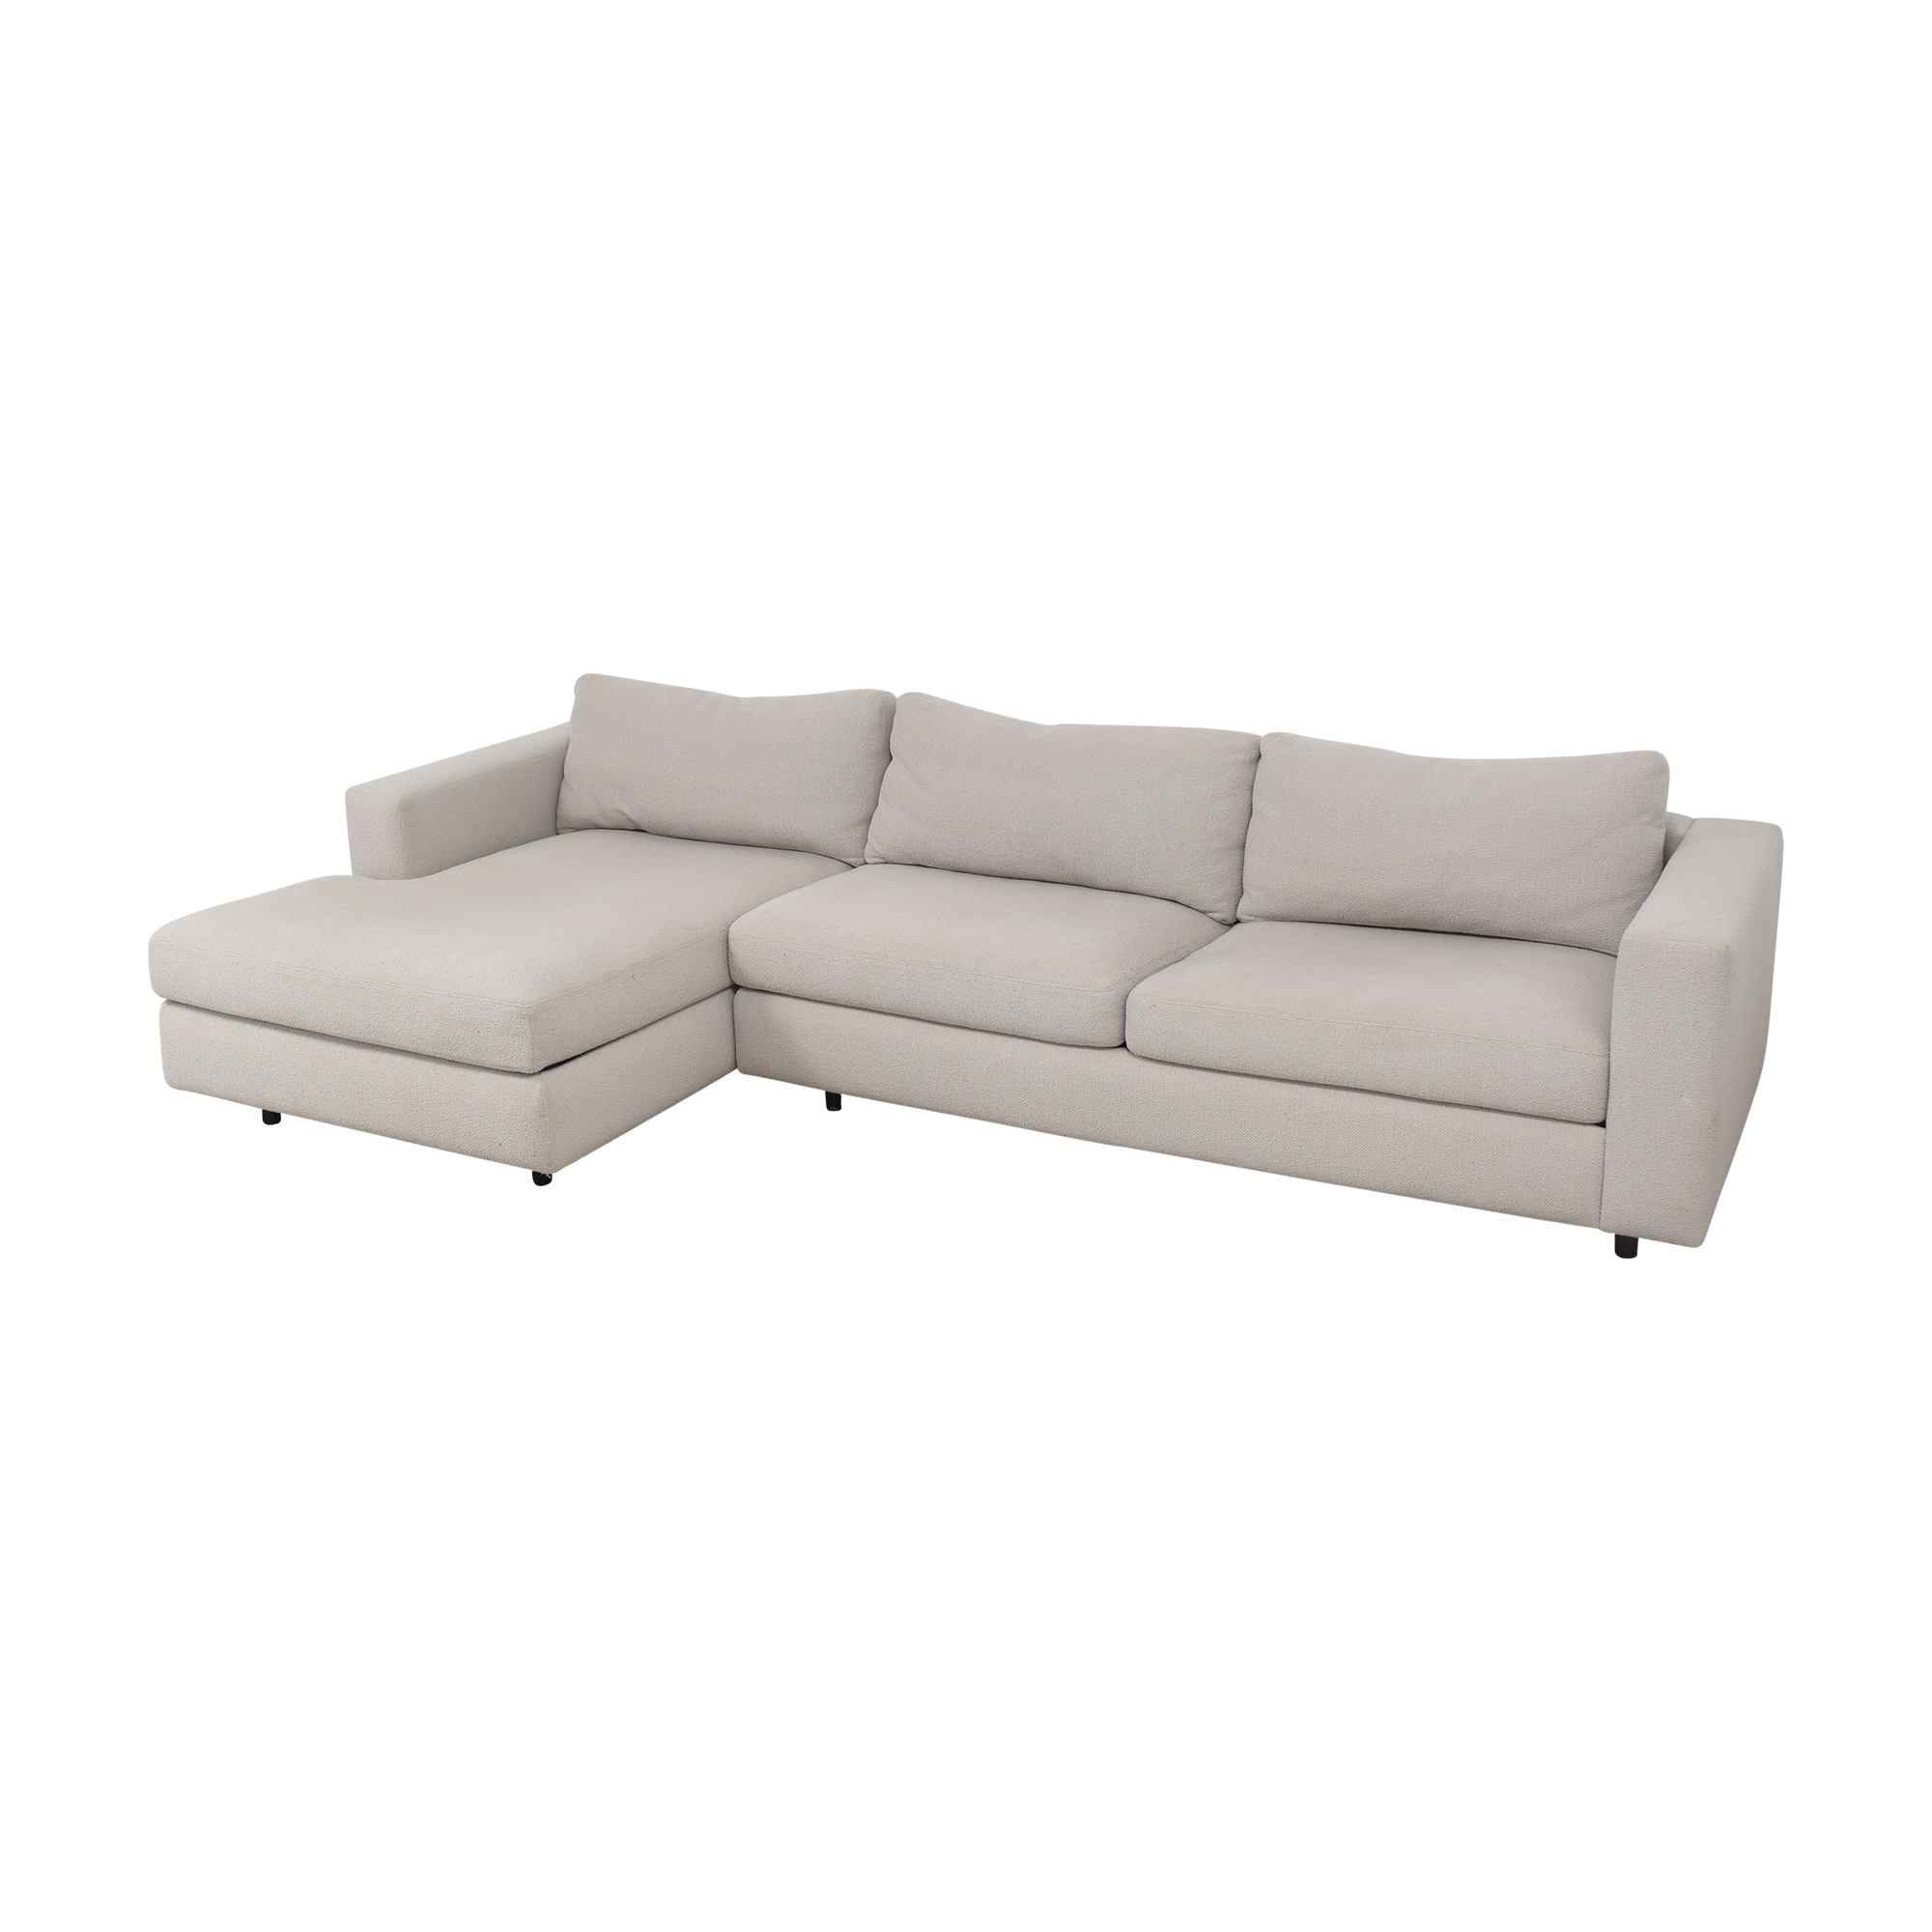 Design Within Reach Design Within Reach Reid Sectional Sofa second hand